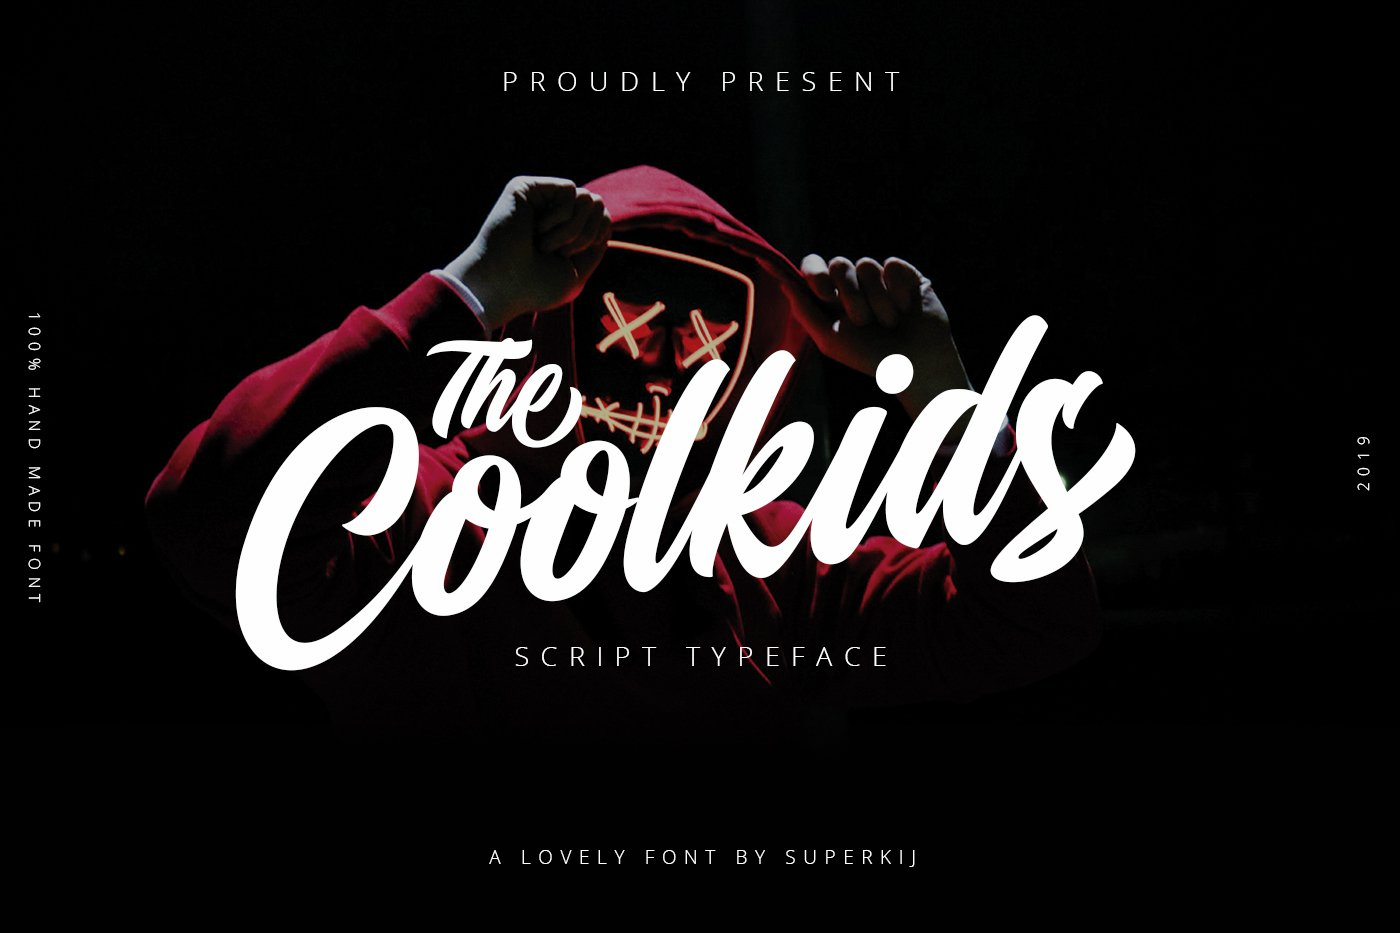 Coolkids-Font